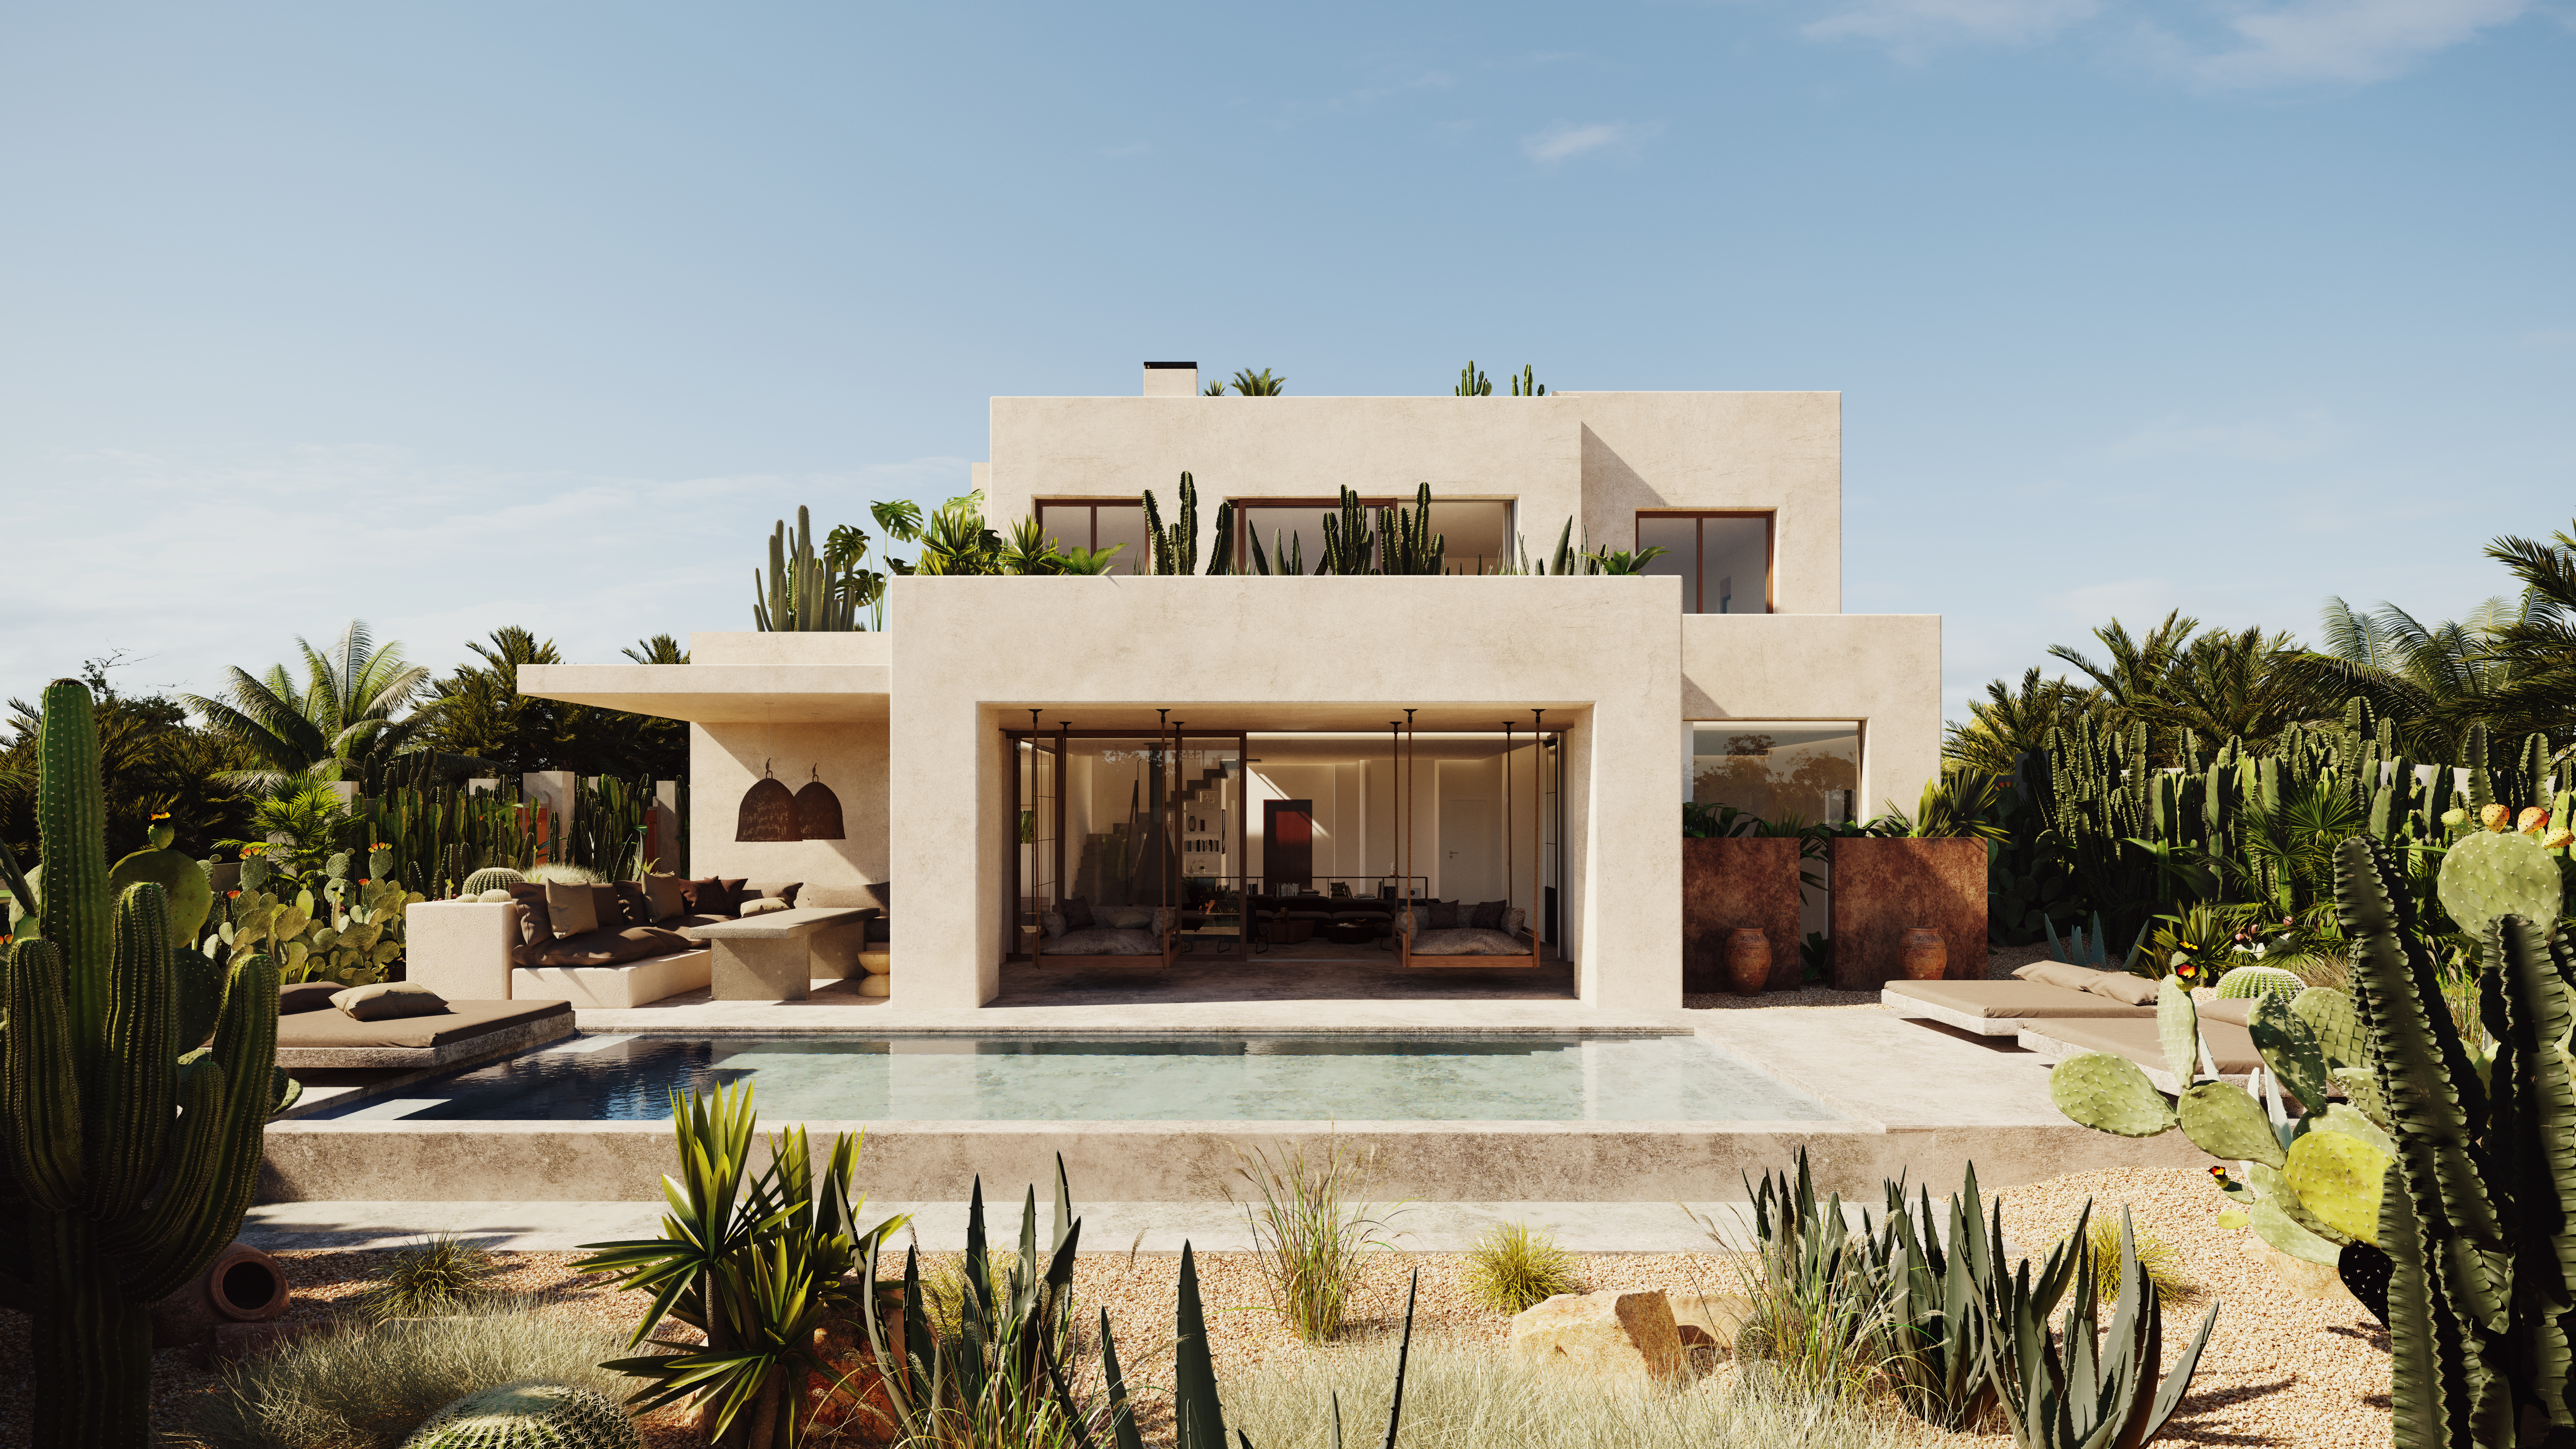 SUPERB OPPORTUNITY IN A TURN KEY VILLA PROJECT IN LOS MONTEROS BEACH